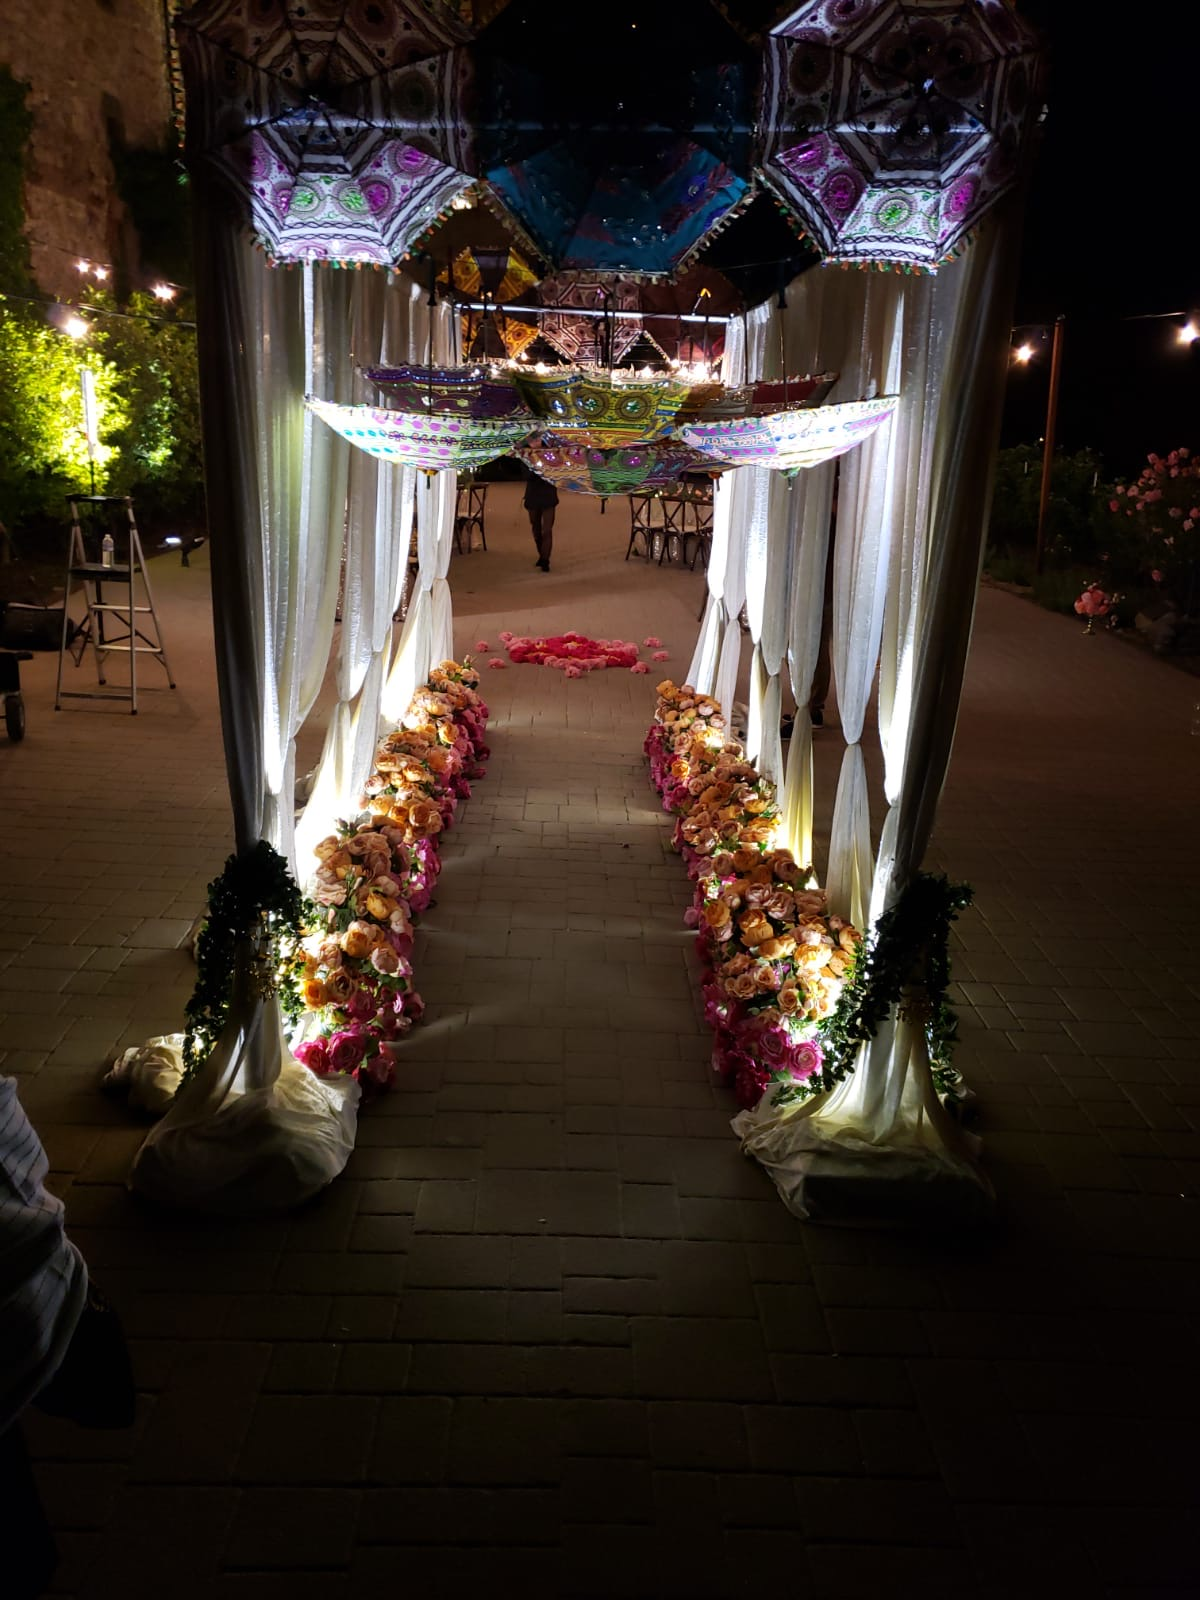 R&R Event Rentals - Bay Area Indian Wedding Decor - Backdrops & Draping, Table Linens, Centerpieces,